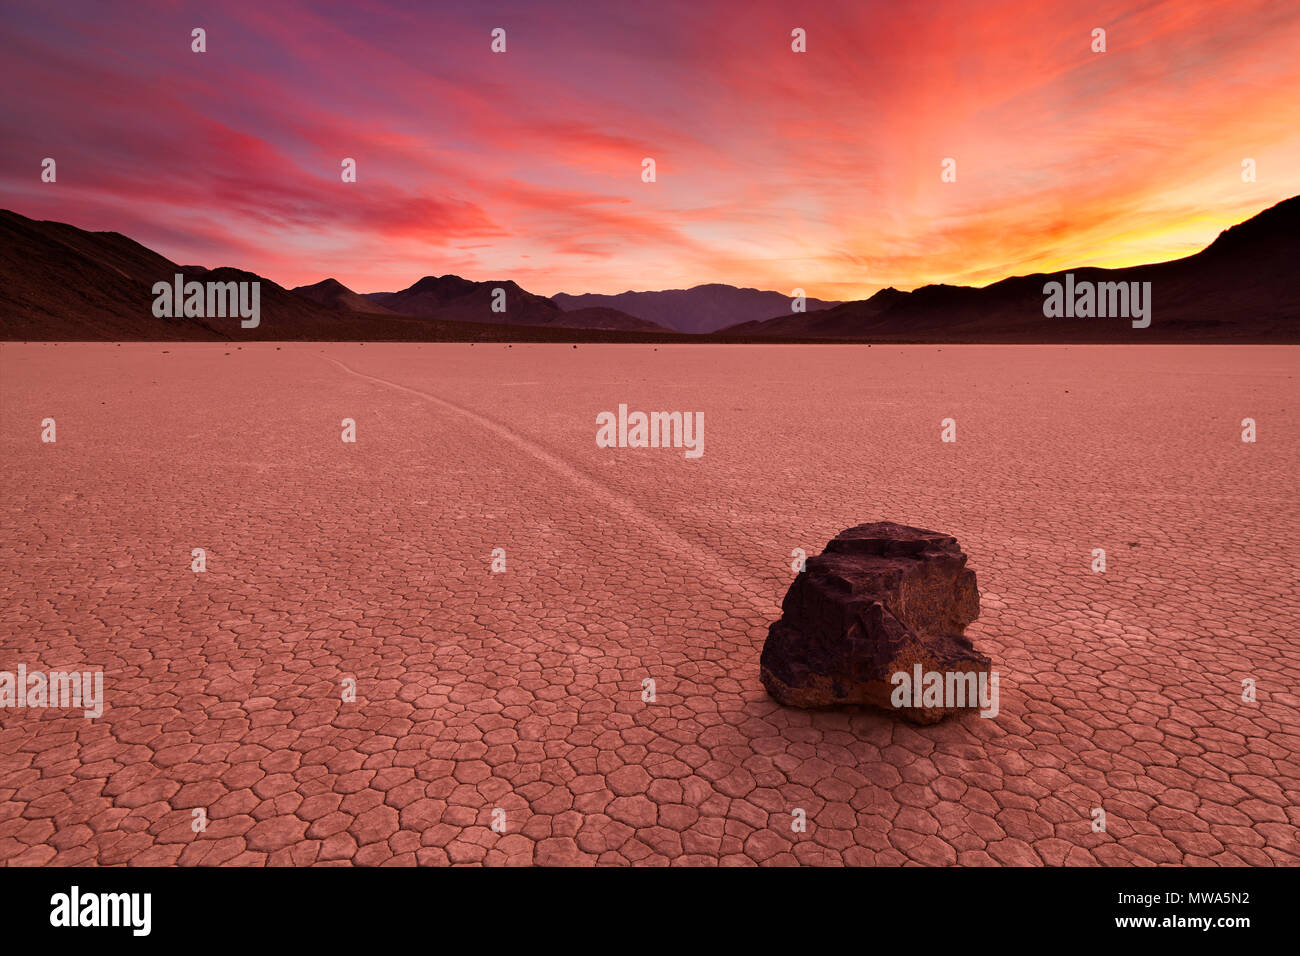 The moving rocks of the Racetrack in Death Valley National Park, California, USA during sunset. - Stock Image